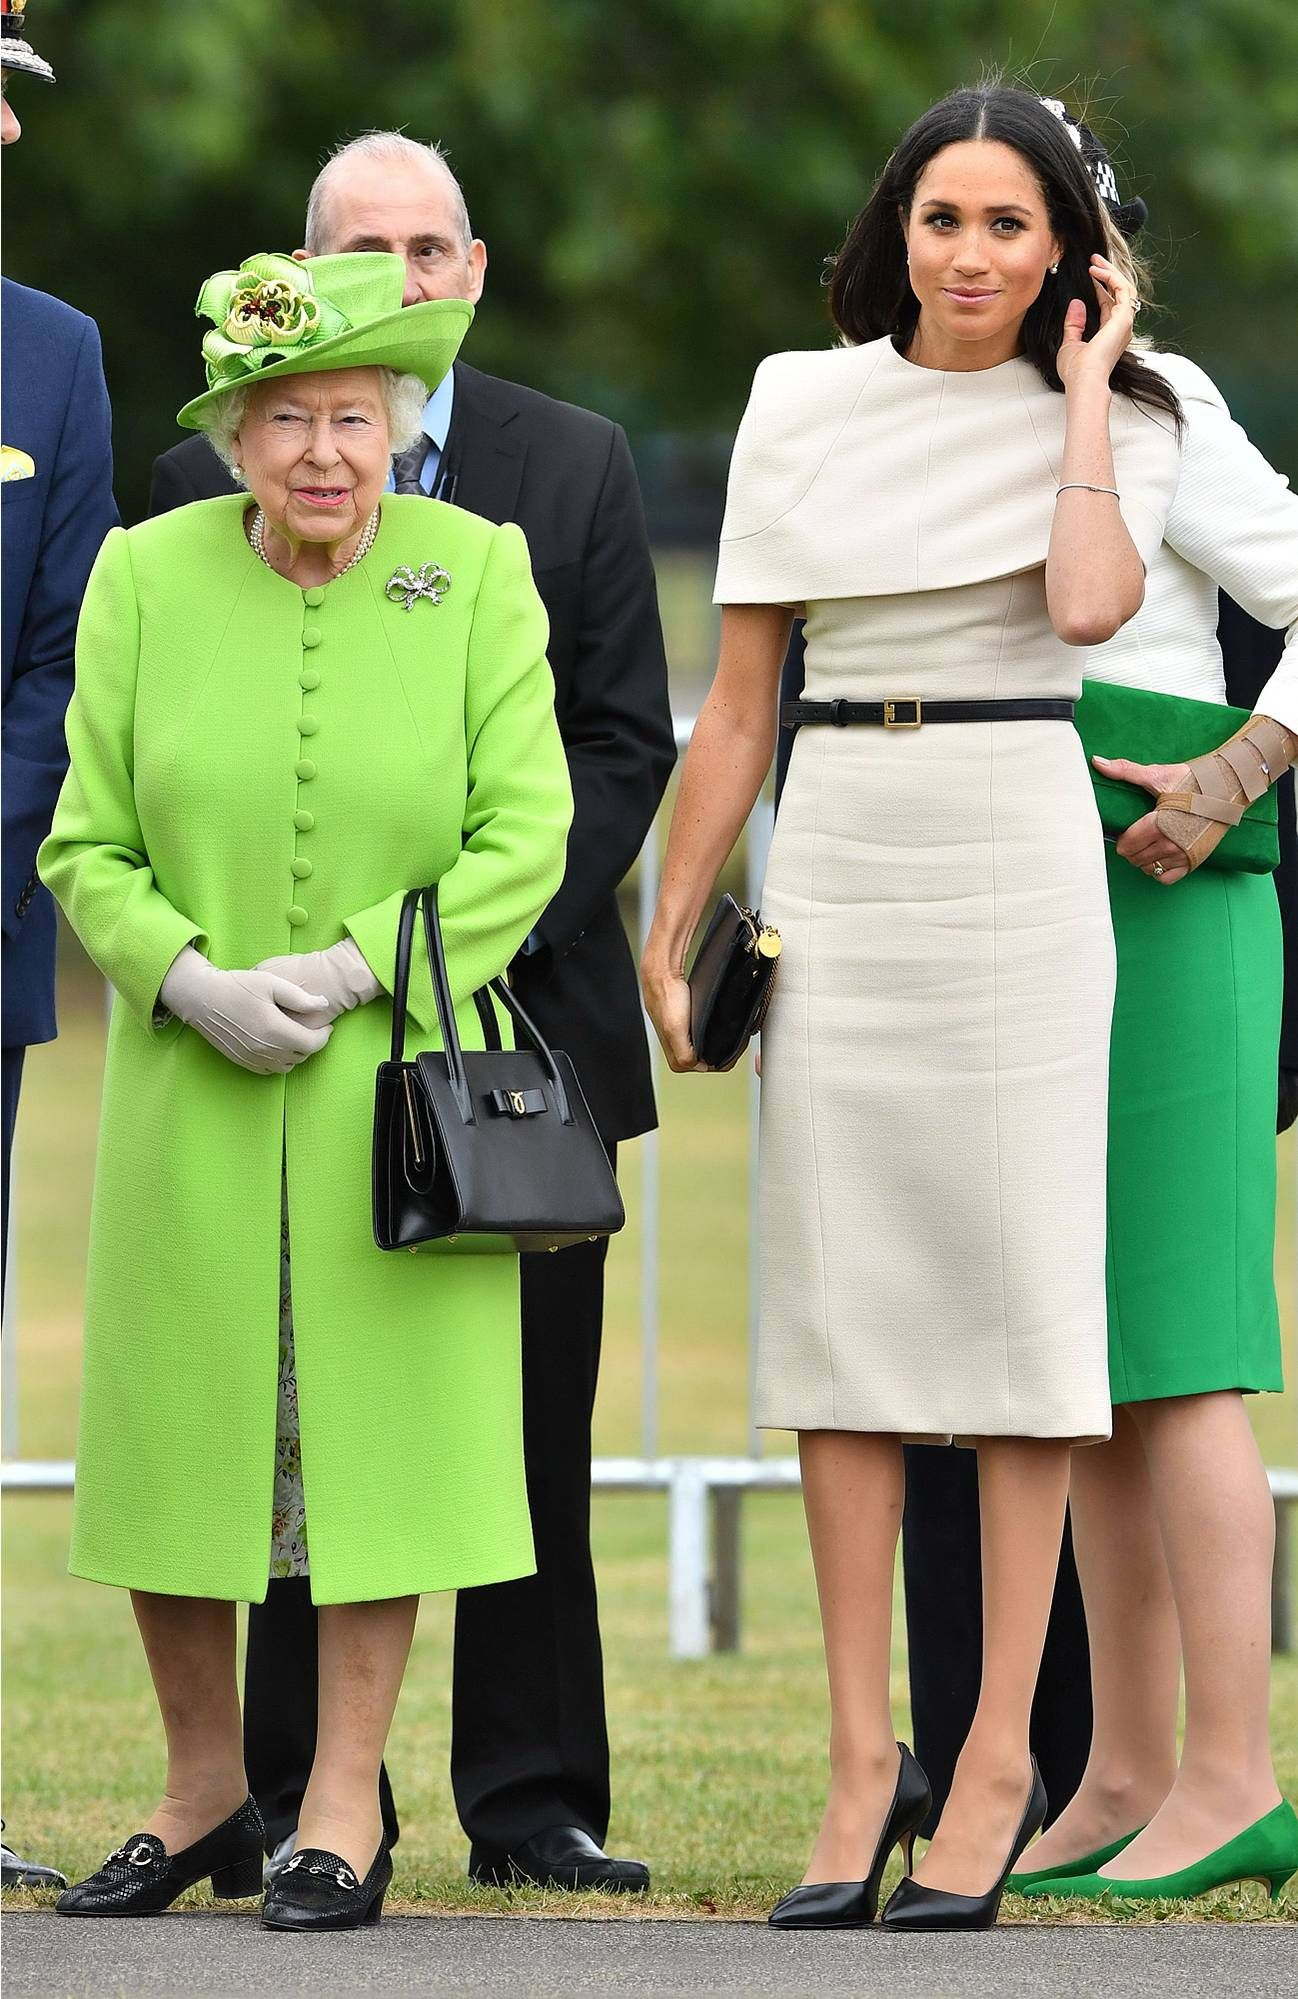 e39f14e20ab The Duchess and the Queen! Meghan Markle and Queen Elizabeth Step ...